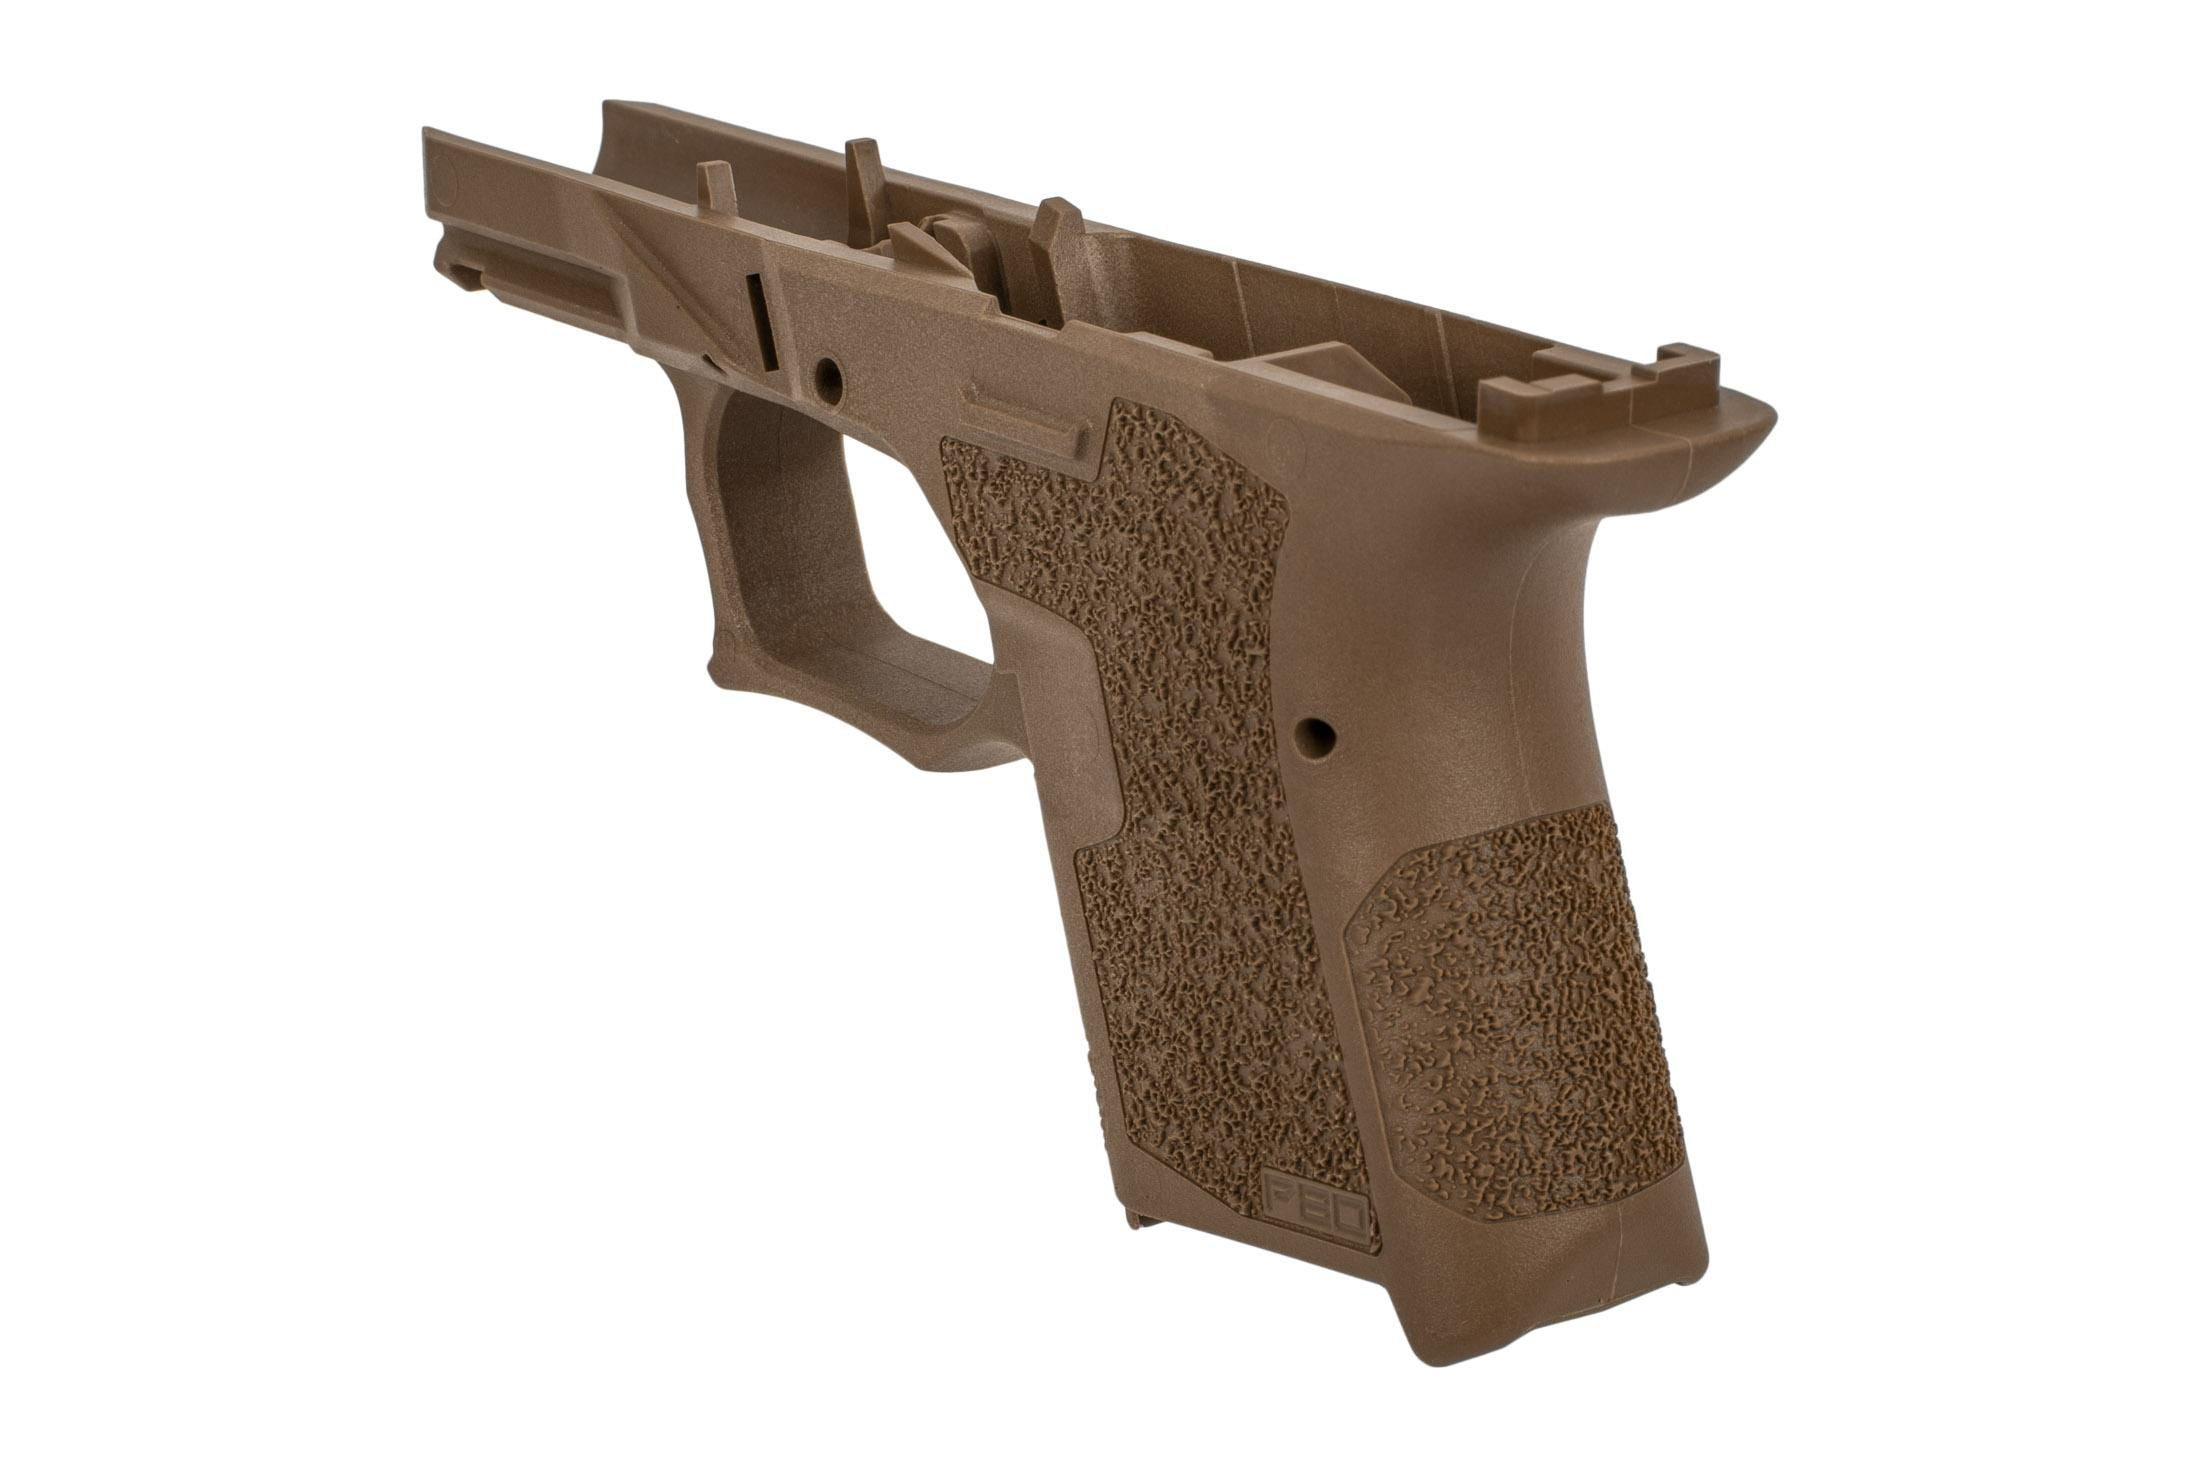 Polymer 80 sub compact serialized flat dark earth frame features a vertical grip angle